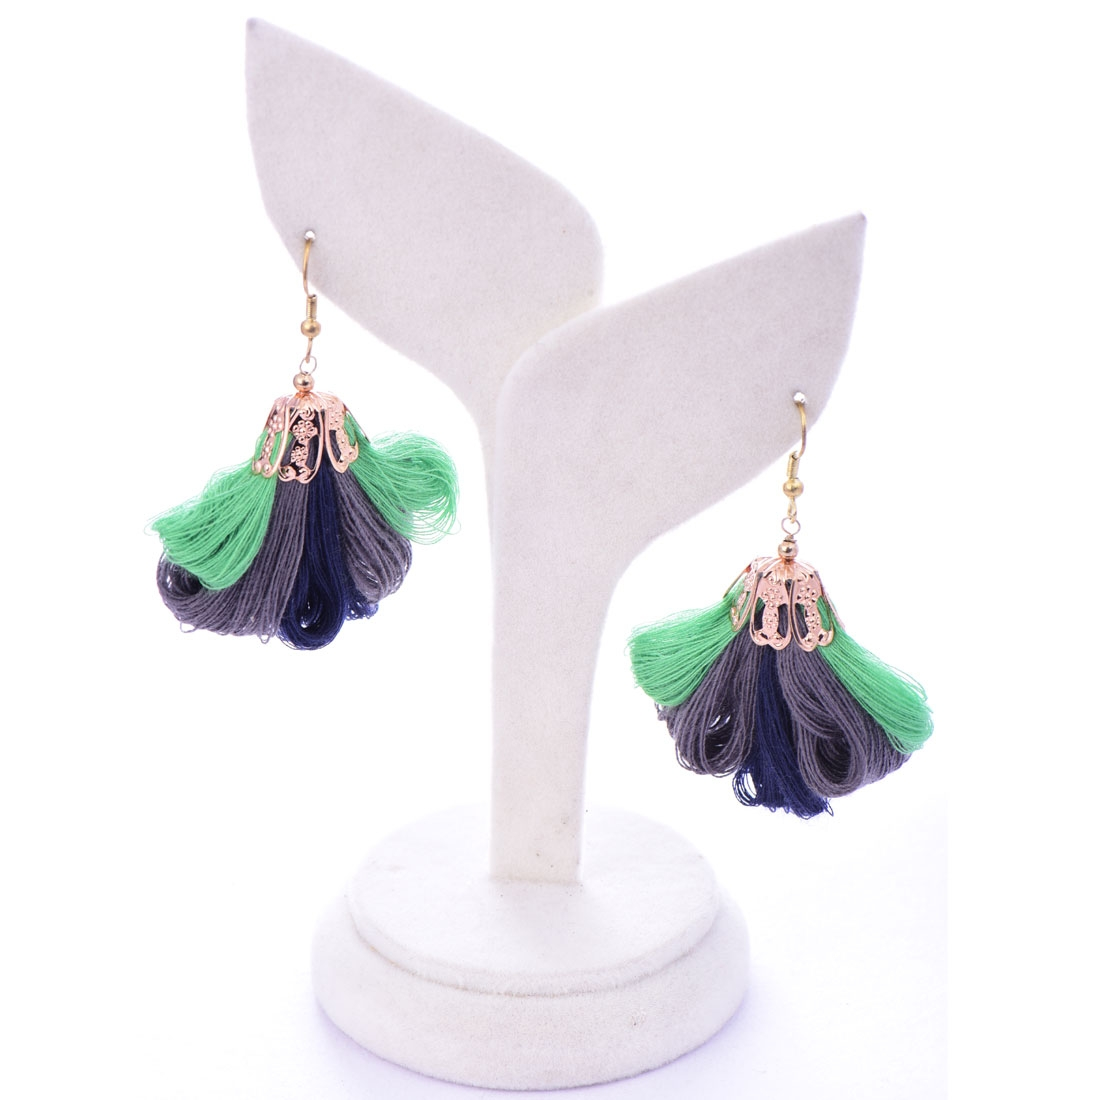 Beads India Brindle 1404485 Earrings